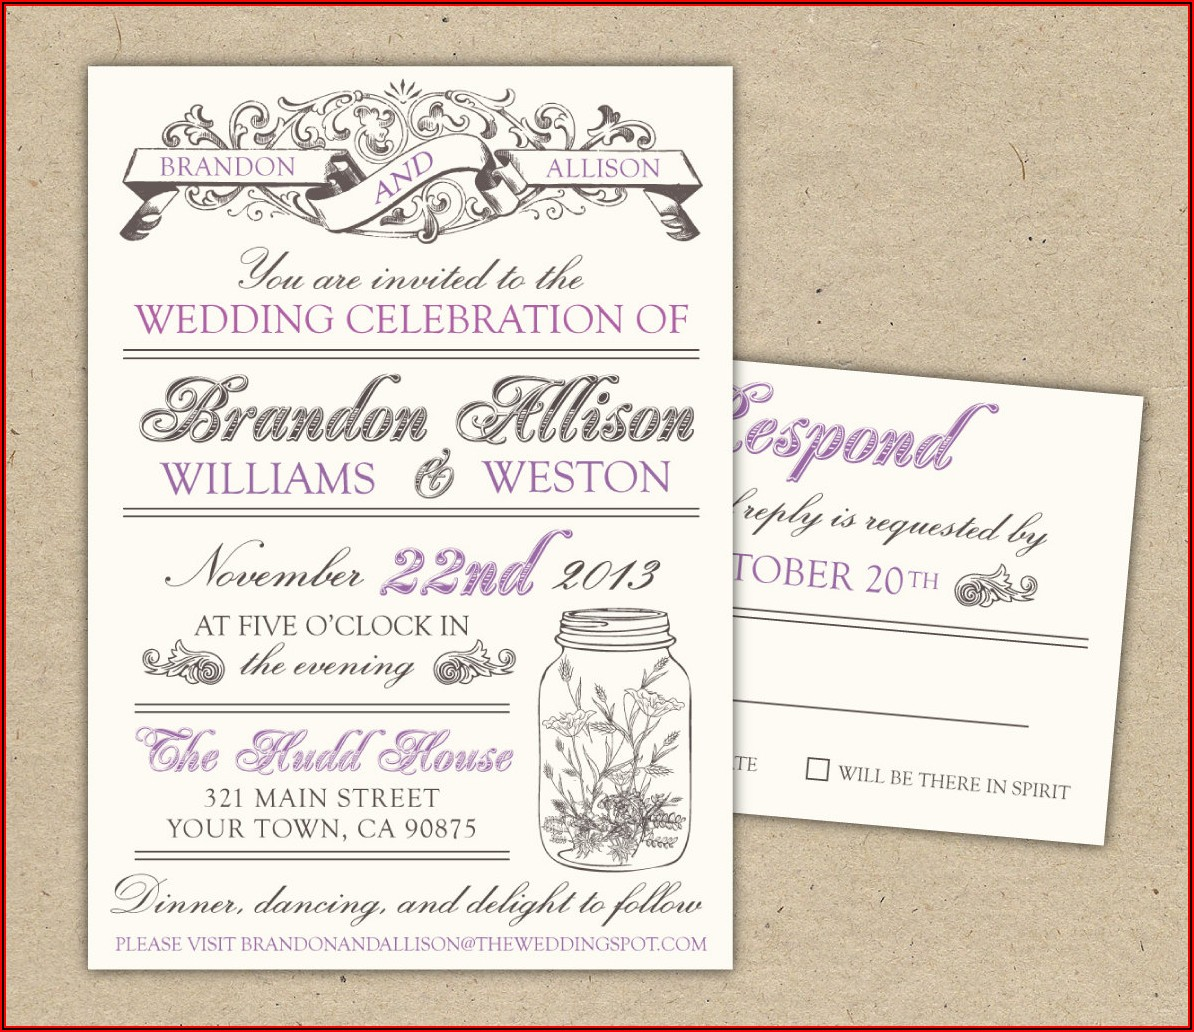 Marriage Invitation Templates Free Download